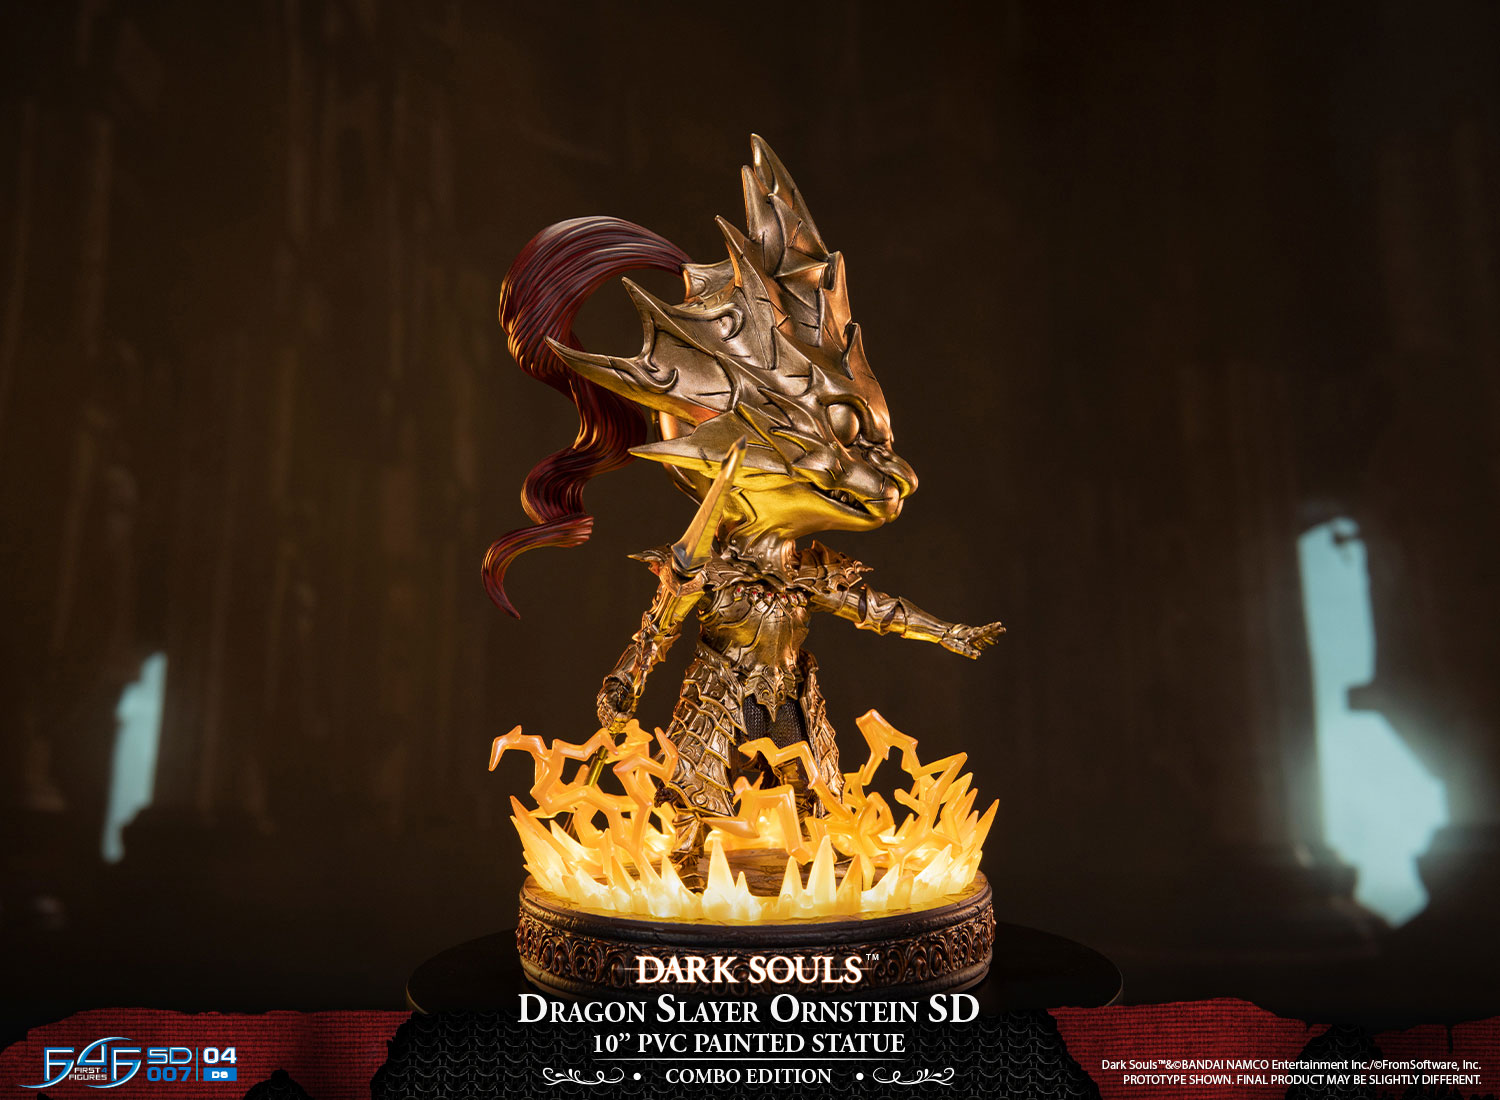 Dragon Slayer Ornstein SD & Old Dragonslayer SD (Combo Edition)